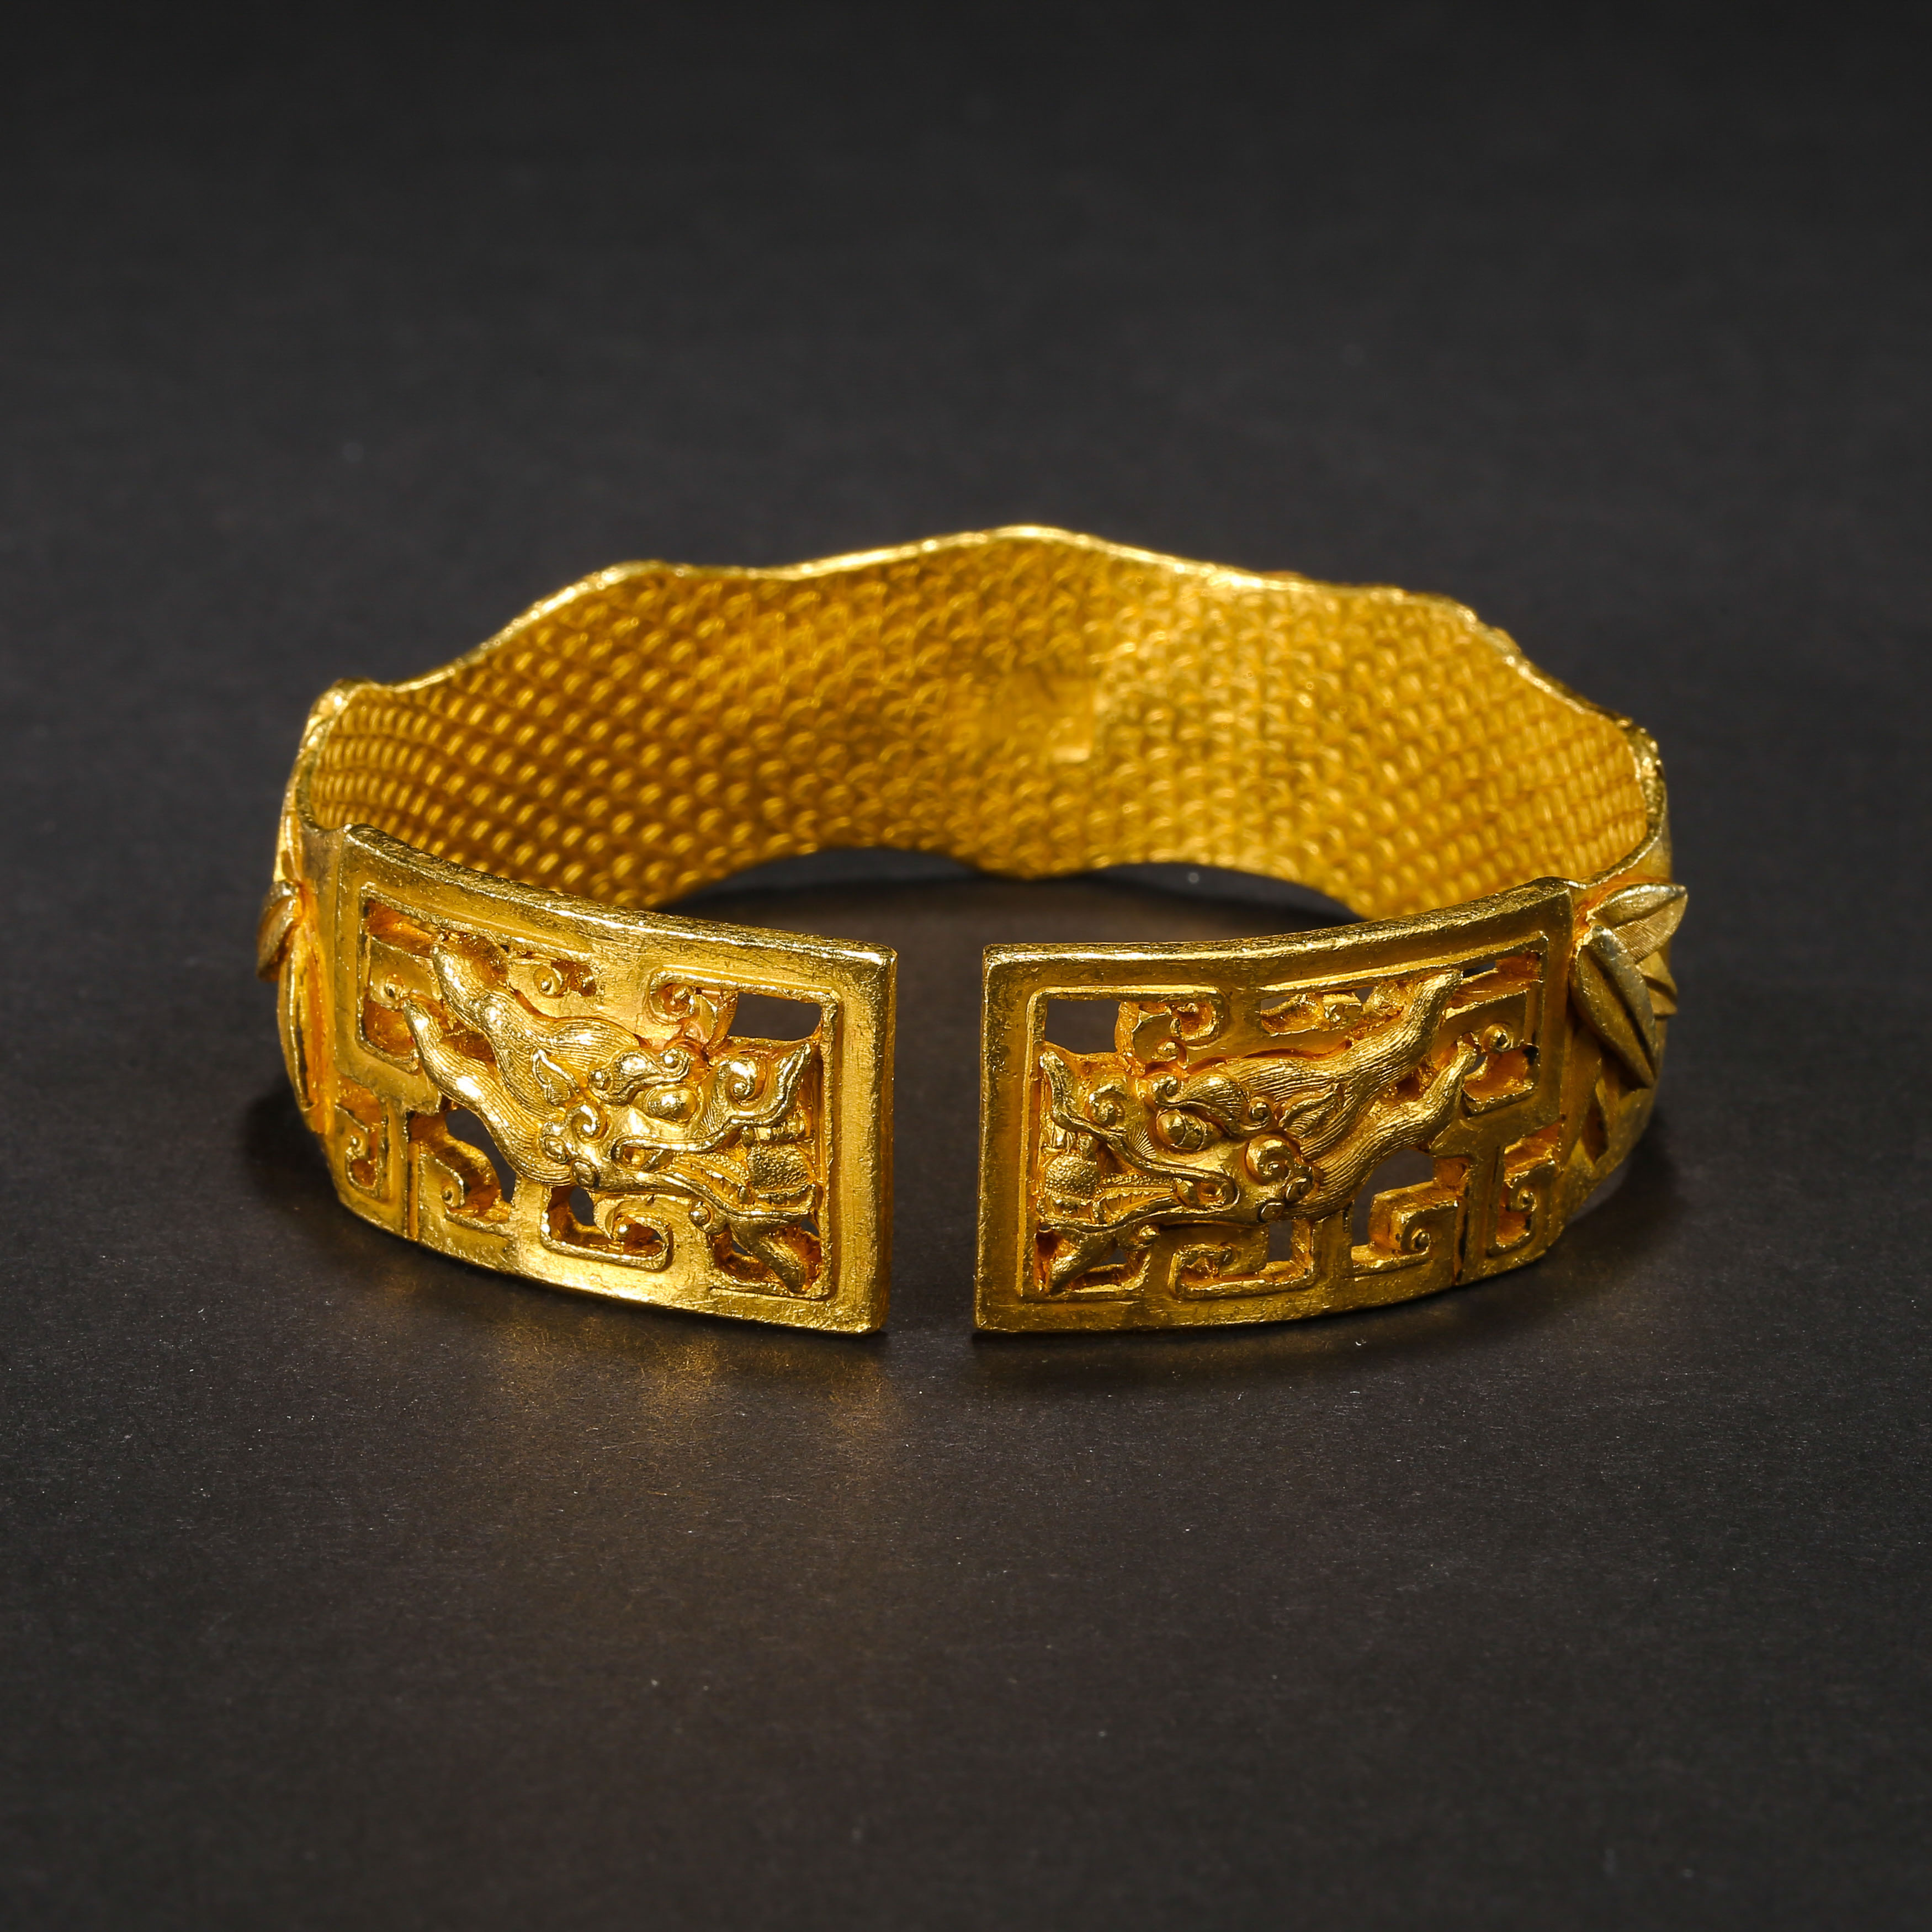 A PAIR OF PURE GOLD BRACELETS, QING DYNASTY, CHINA - Image 8 of 11